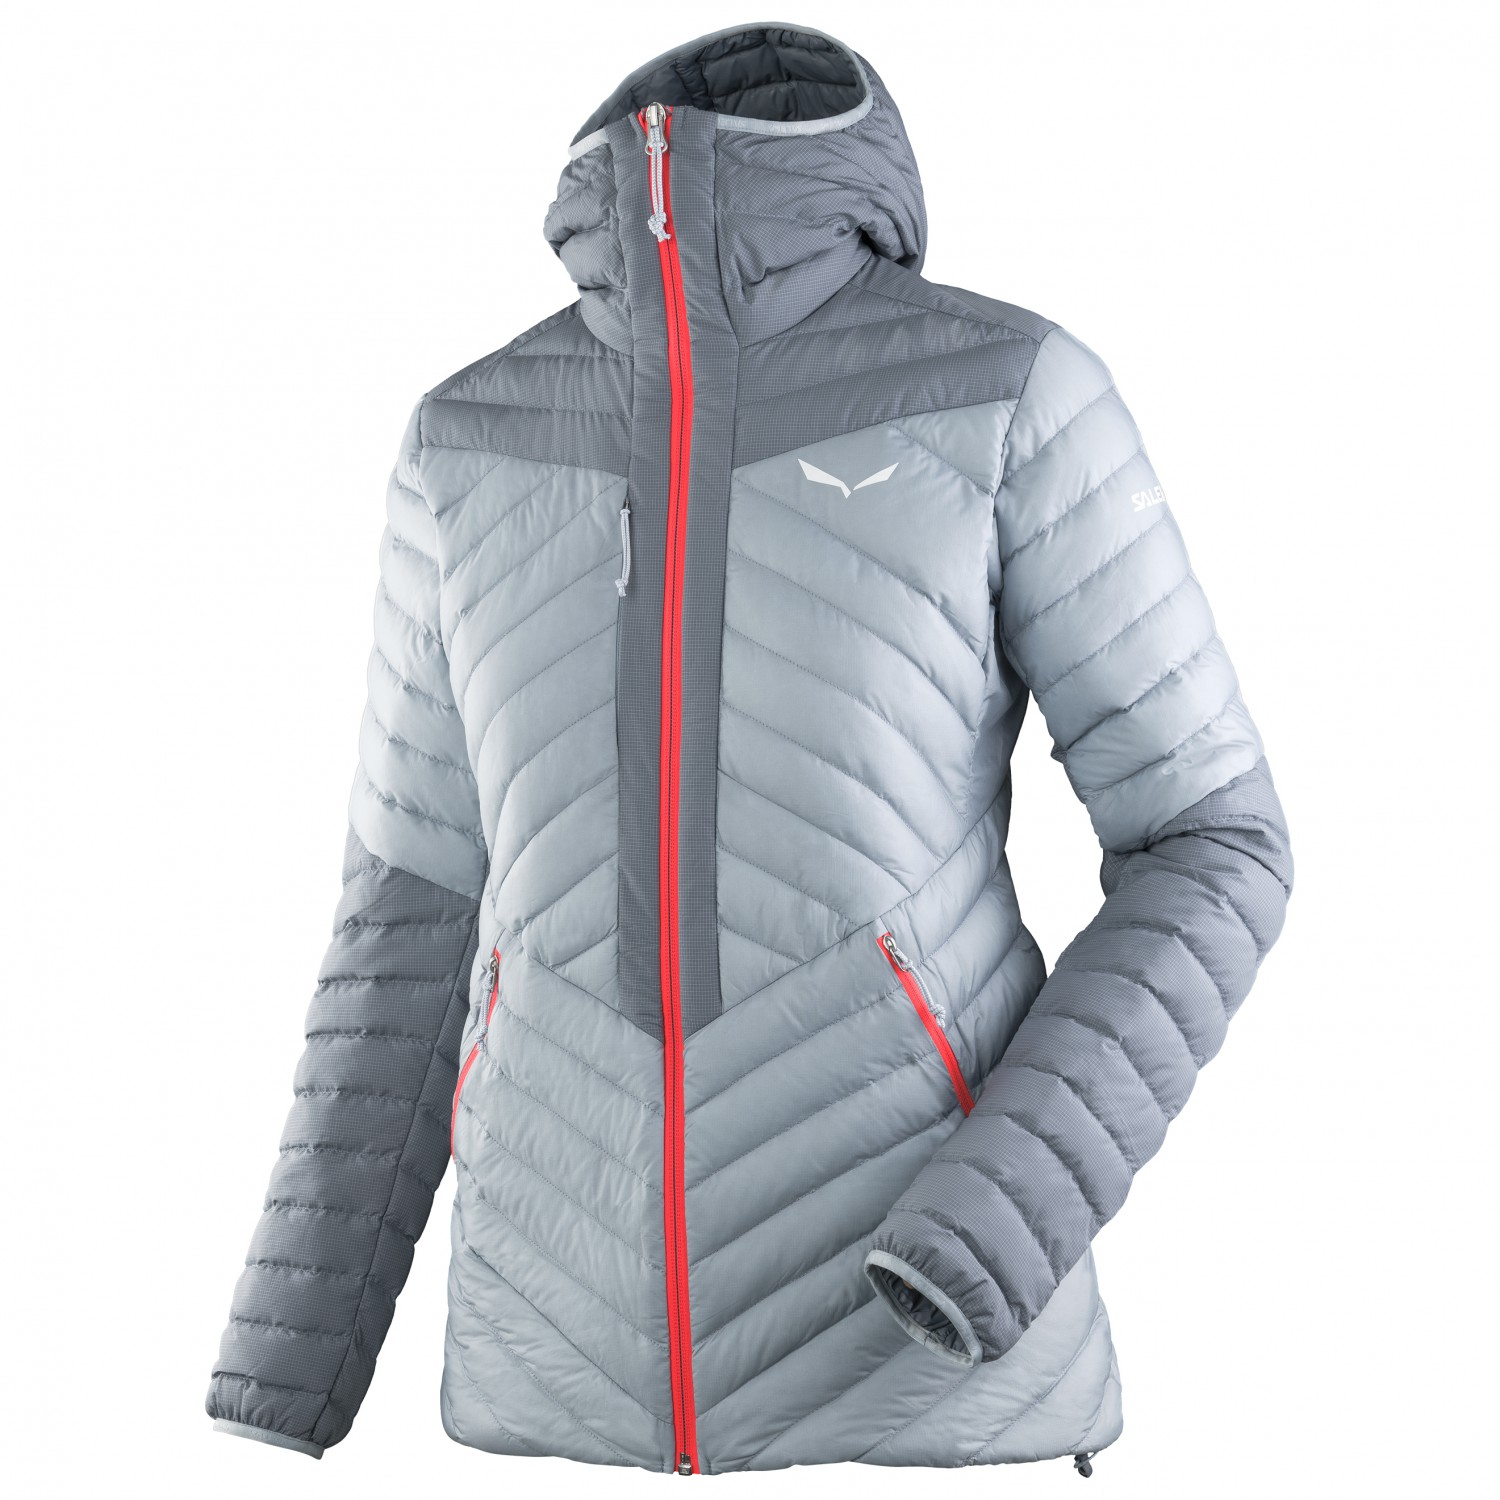 Salewa Women's Ortles Light 2 Down Hood Jacket Daunenjacke Malta 0340 | 36 (EU)